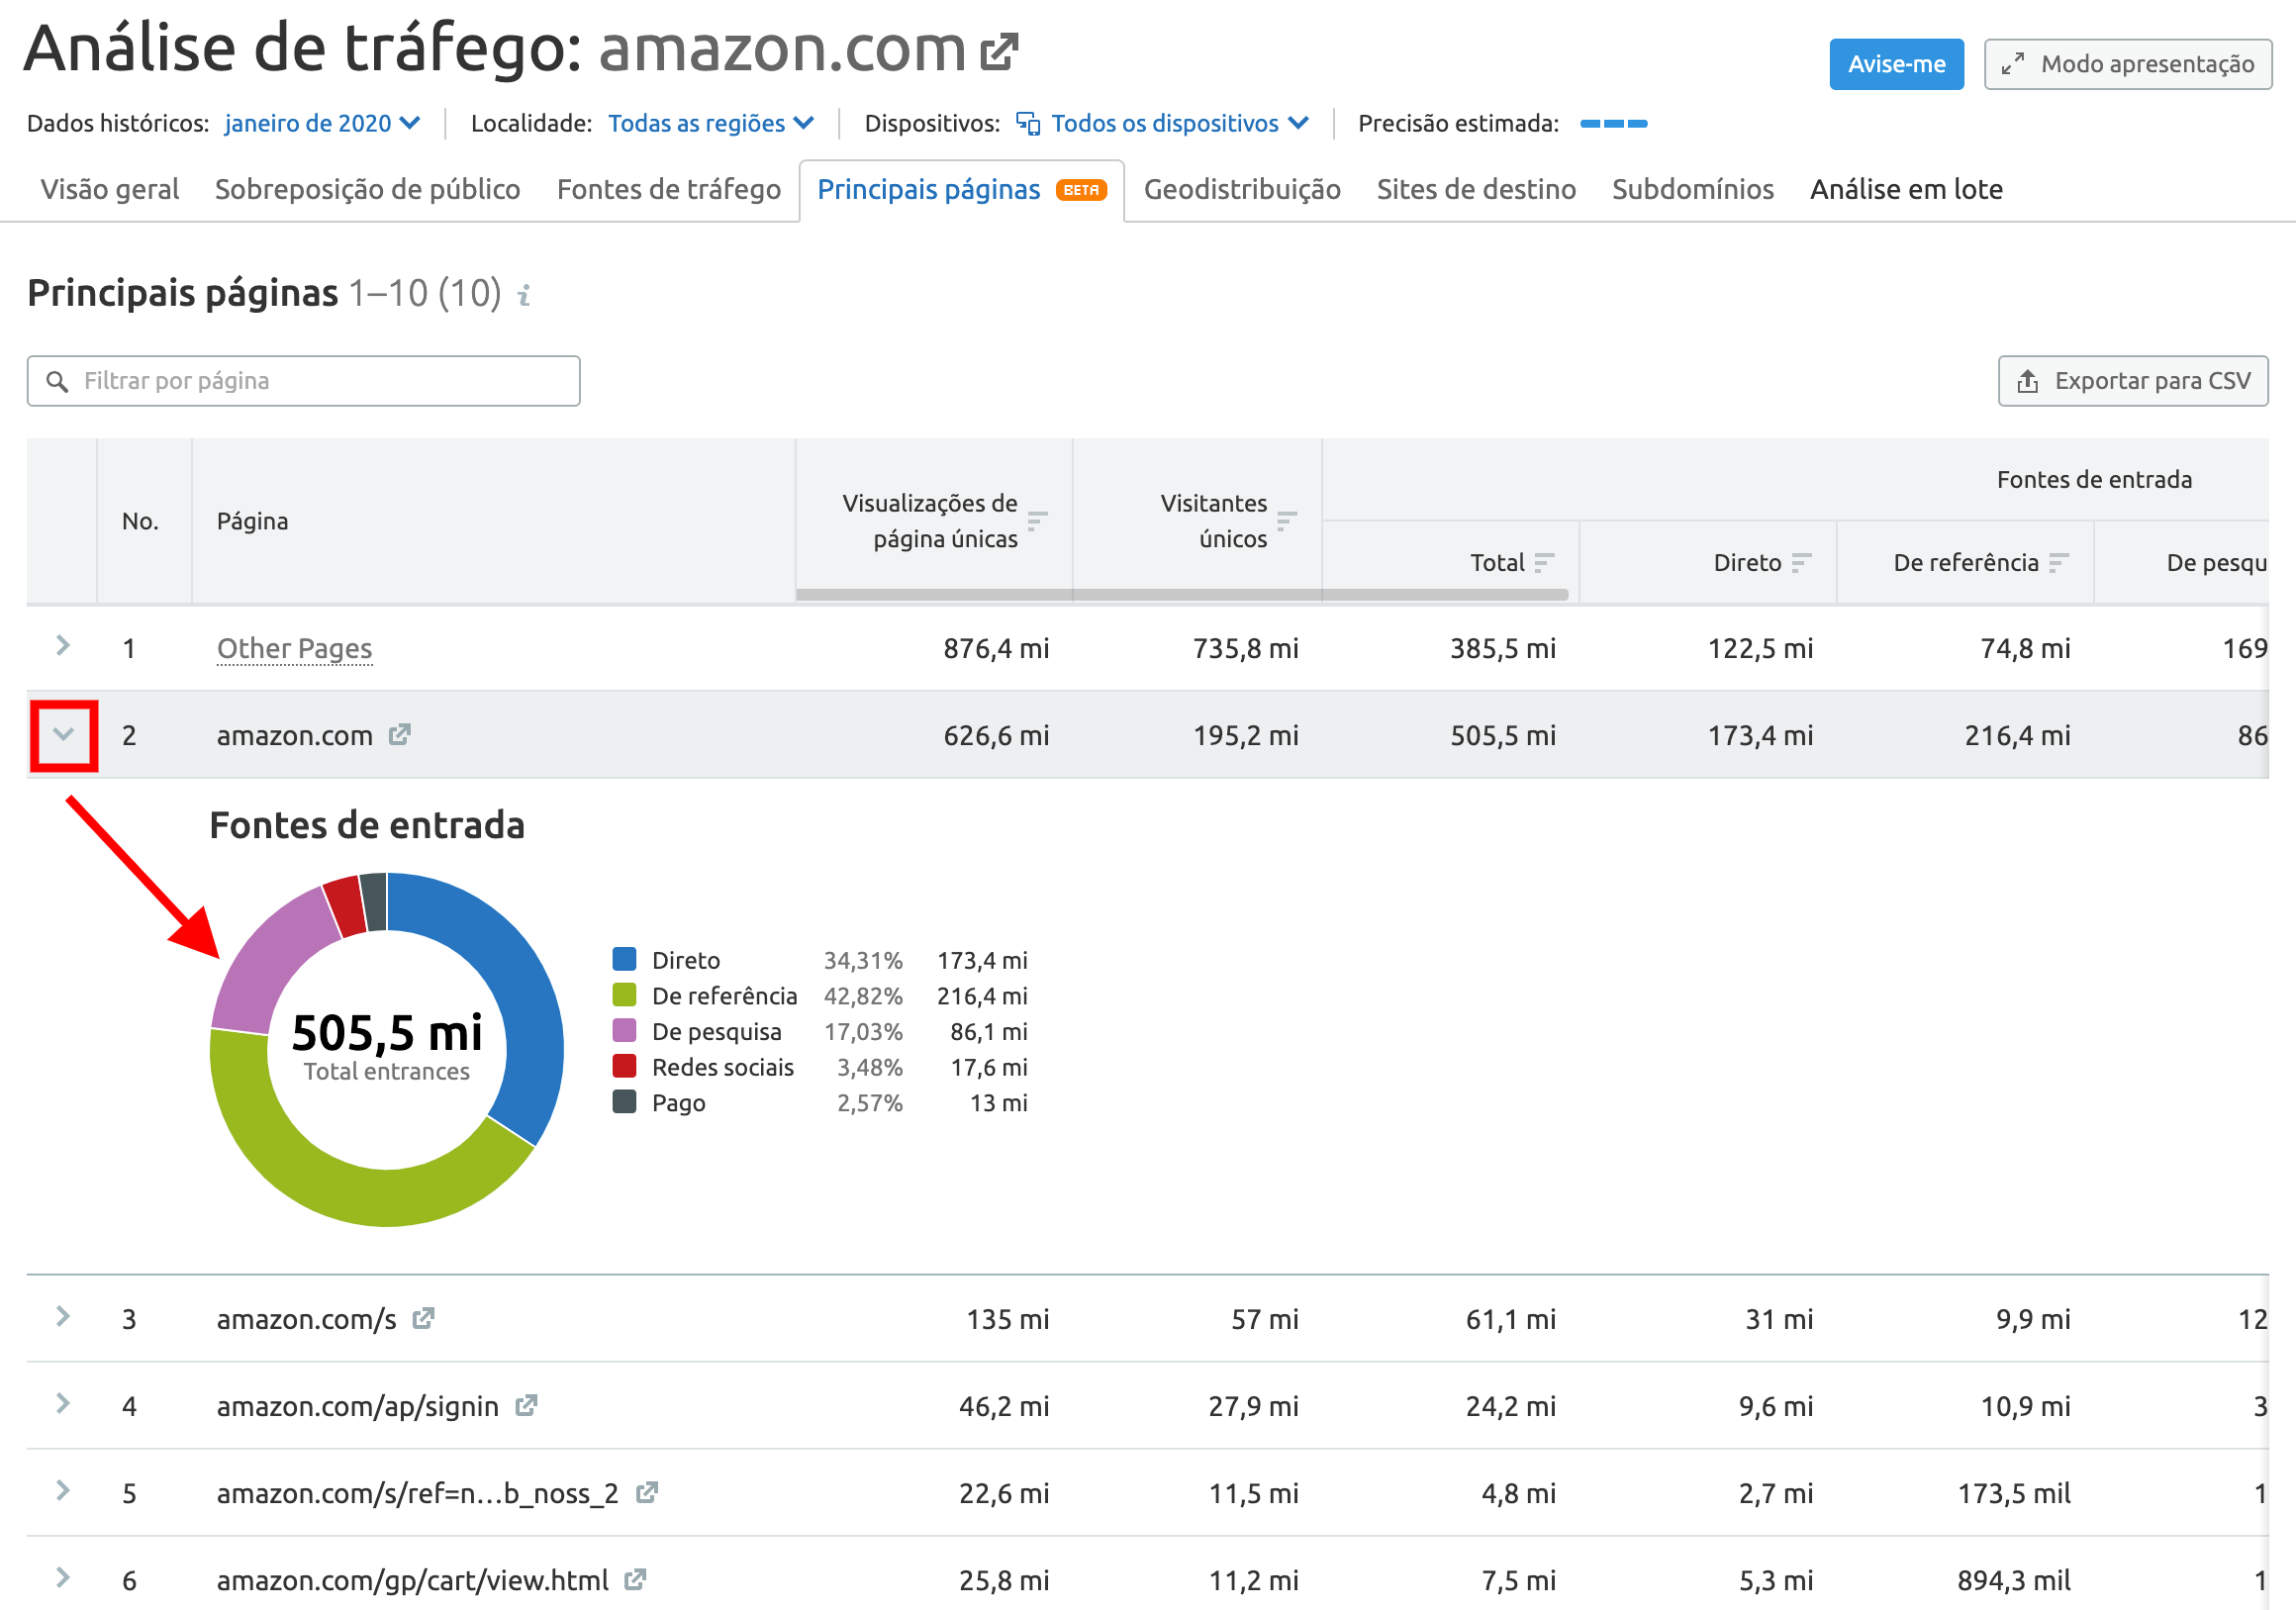 The view of the Top Pages report in Traffic Analytics